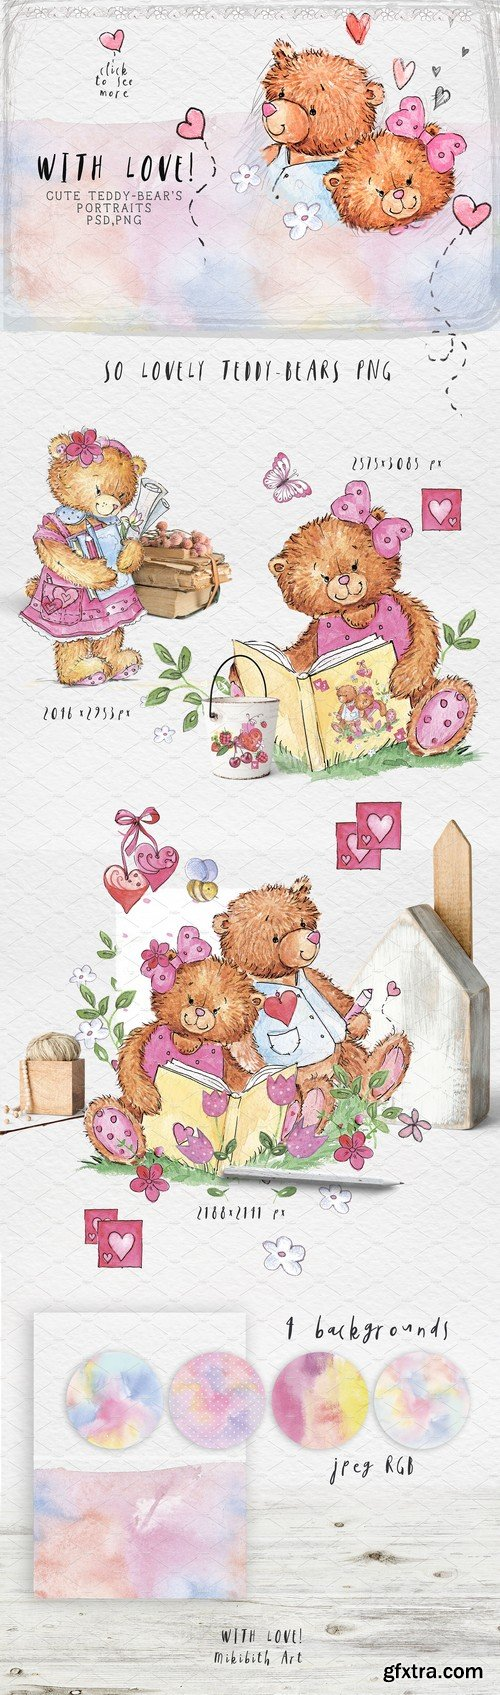 CM - SO LOVELY BEARS 2283930